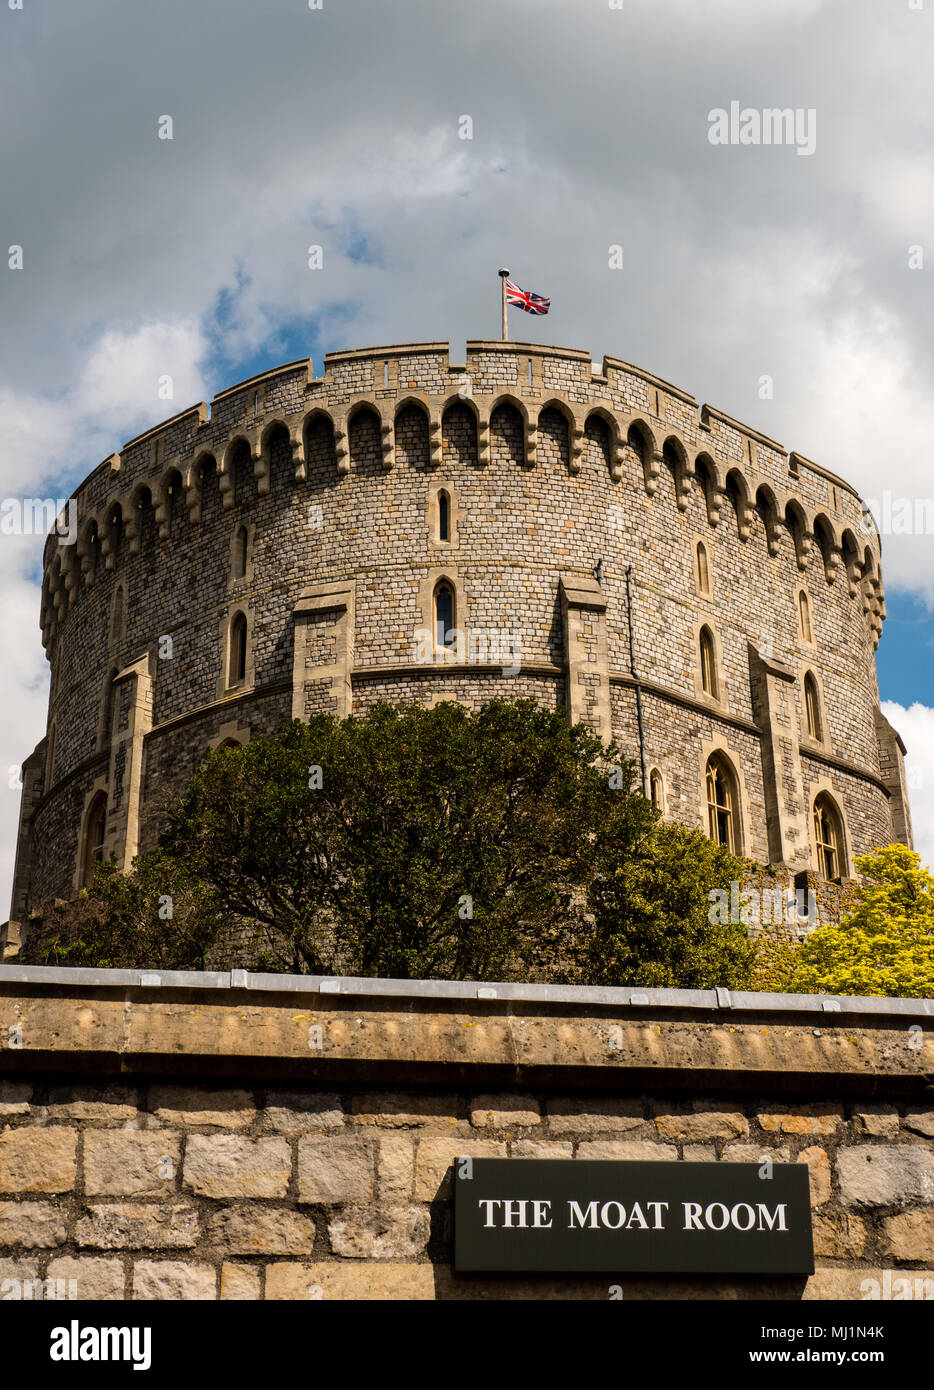 The Keep, Round Tower, Windsor Castle, Windsor, Berkshire, England, UK, GB. - Stock Image